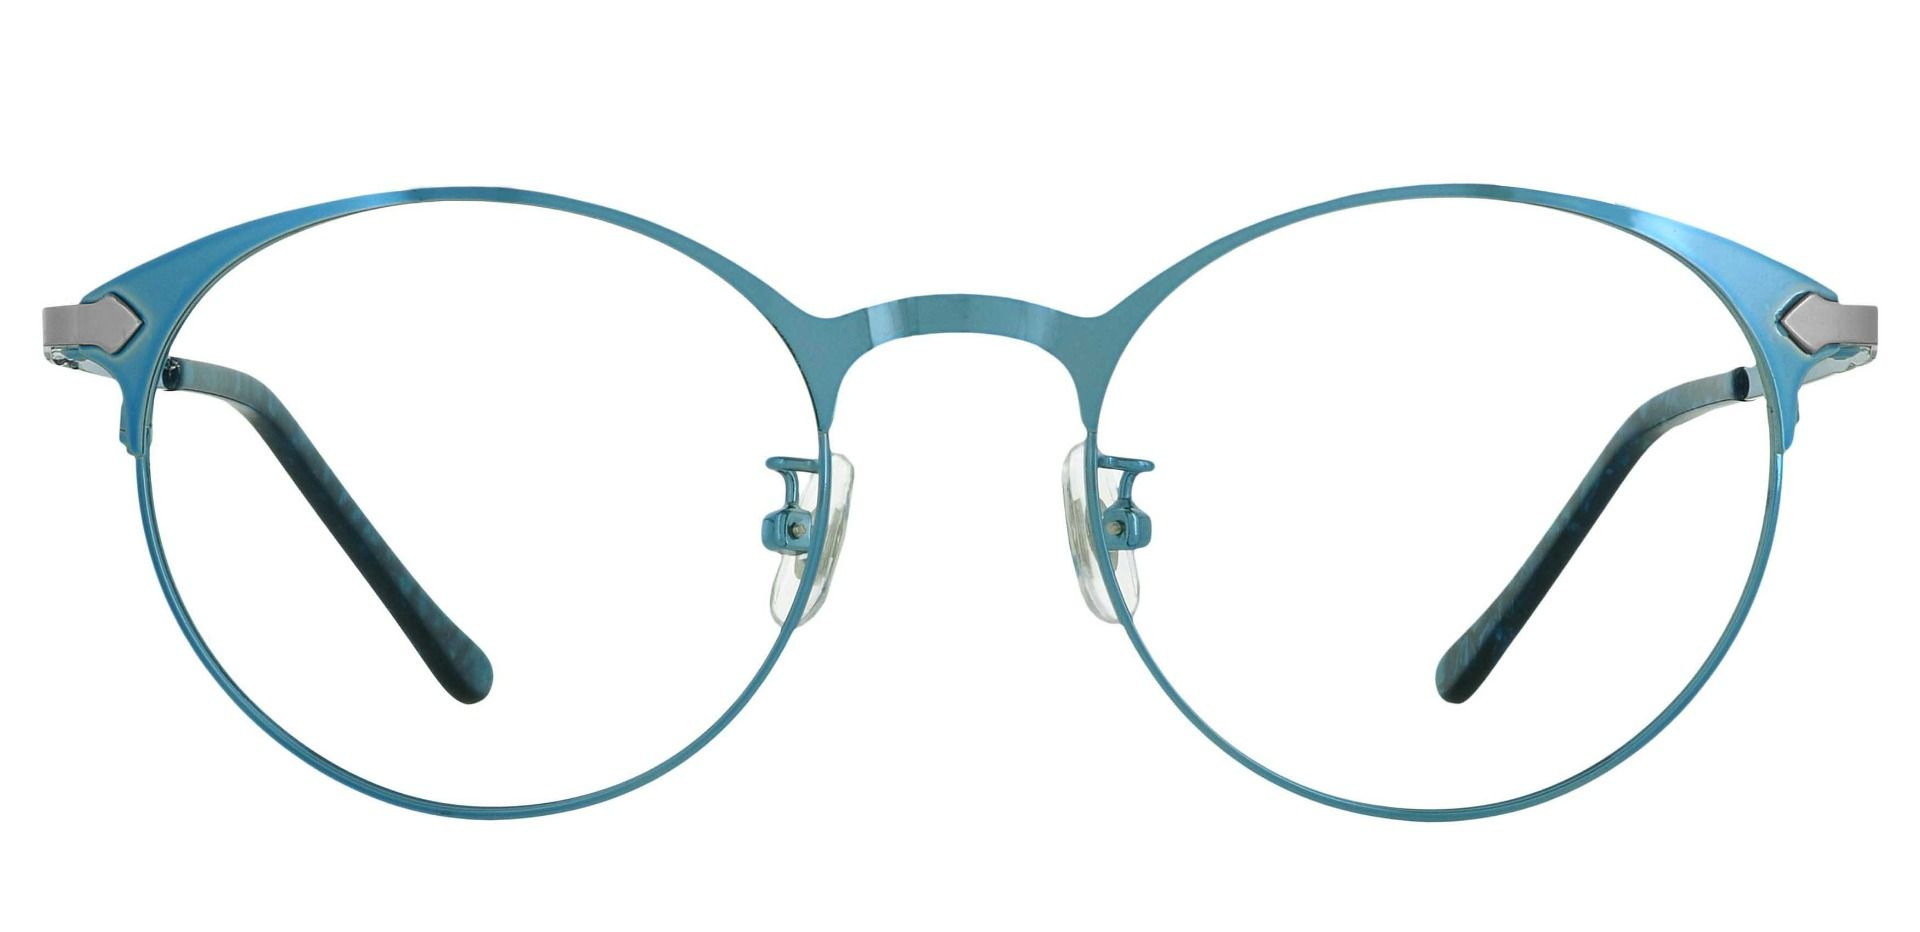 Crest Round Prescription Glasses - Blue